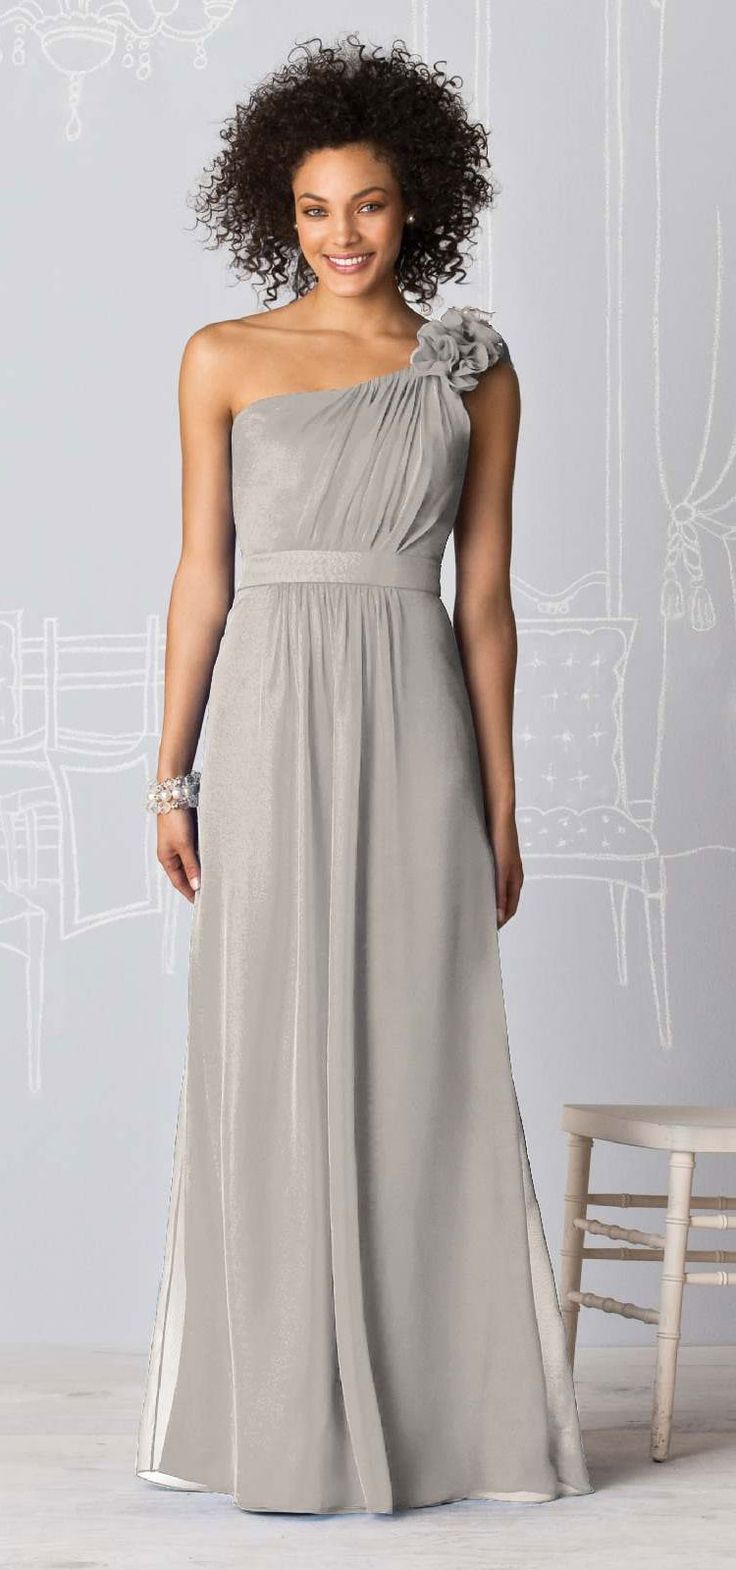 72 best bridesmaids old images on pinterest bridesmaids full length one shoulder bridesmaid dress in lux chiffon fabric has matching belt shirred bodice and pretty flower detail at shoulder ombrellifo Images